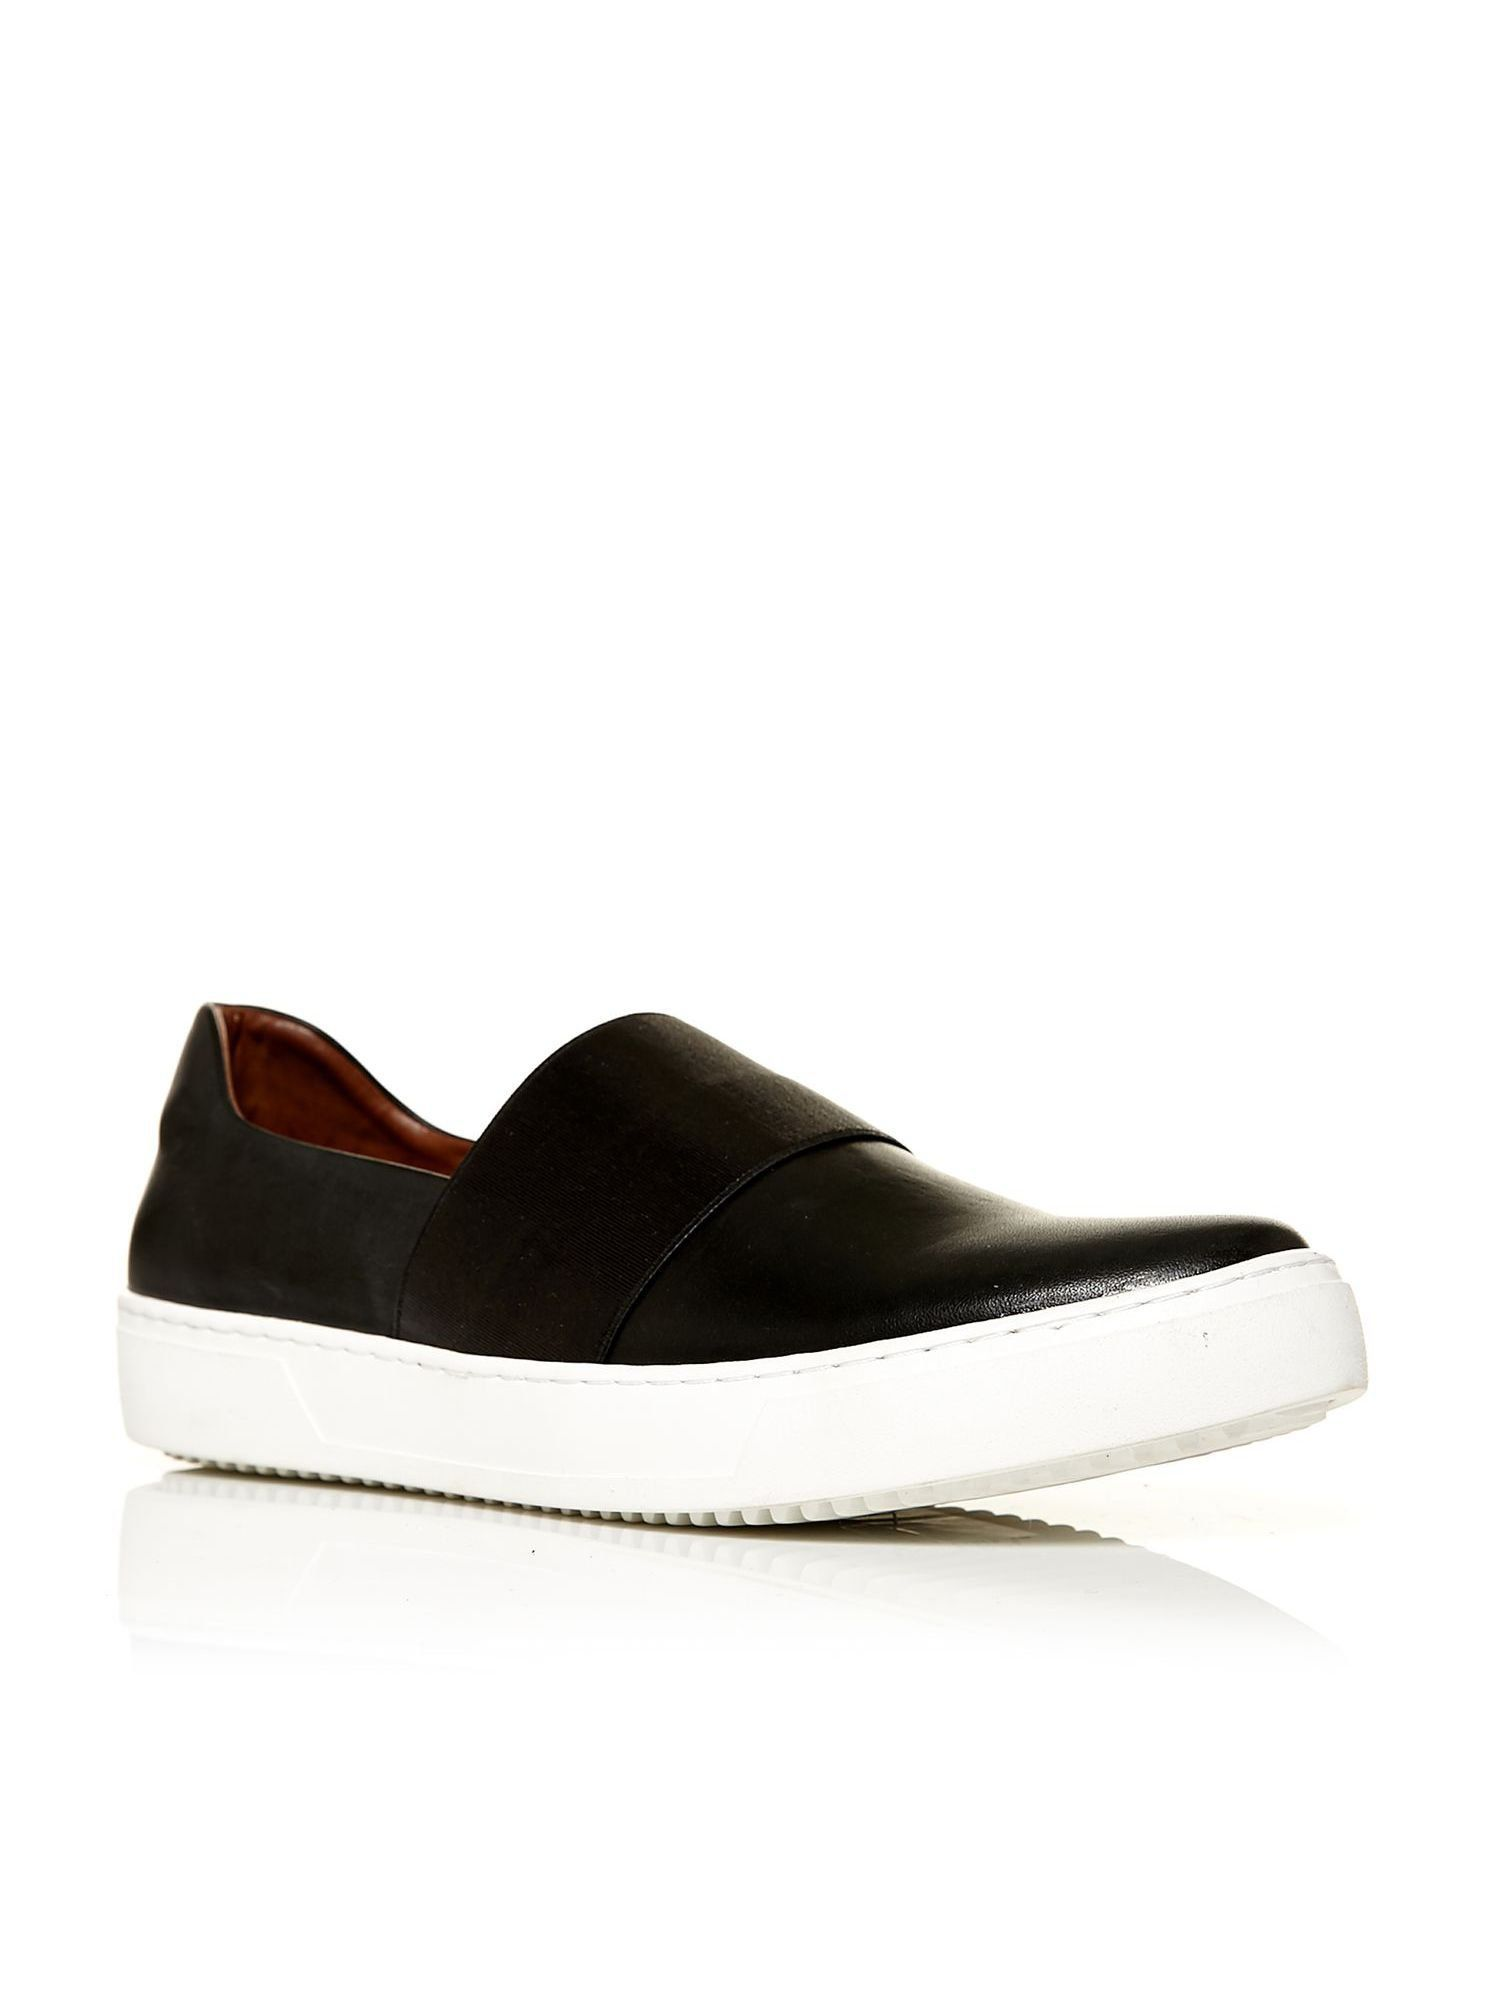 Slip on trainer style A line shoe with elastic front strap., LoafersLow and  Below)LeatherCombination of materialsFlat heelAlmond toeCasual Get the Moda  in ...